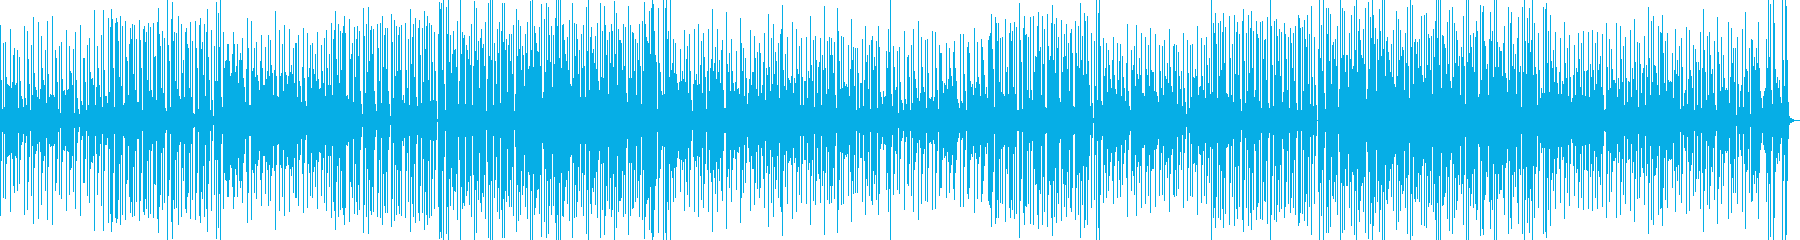 Cute and fun uptempo dance & quiz's reproduced waveform